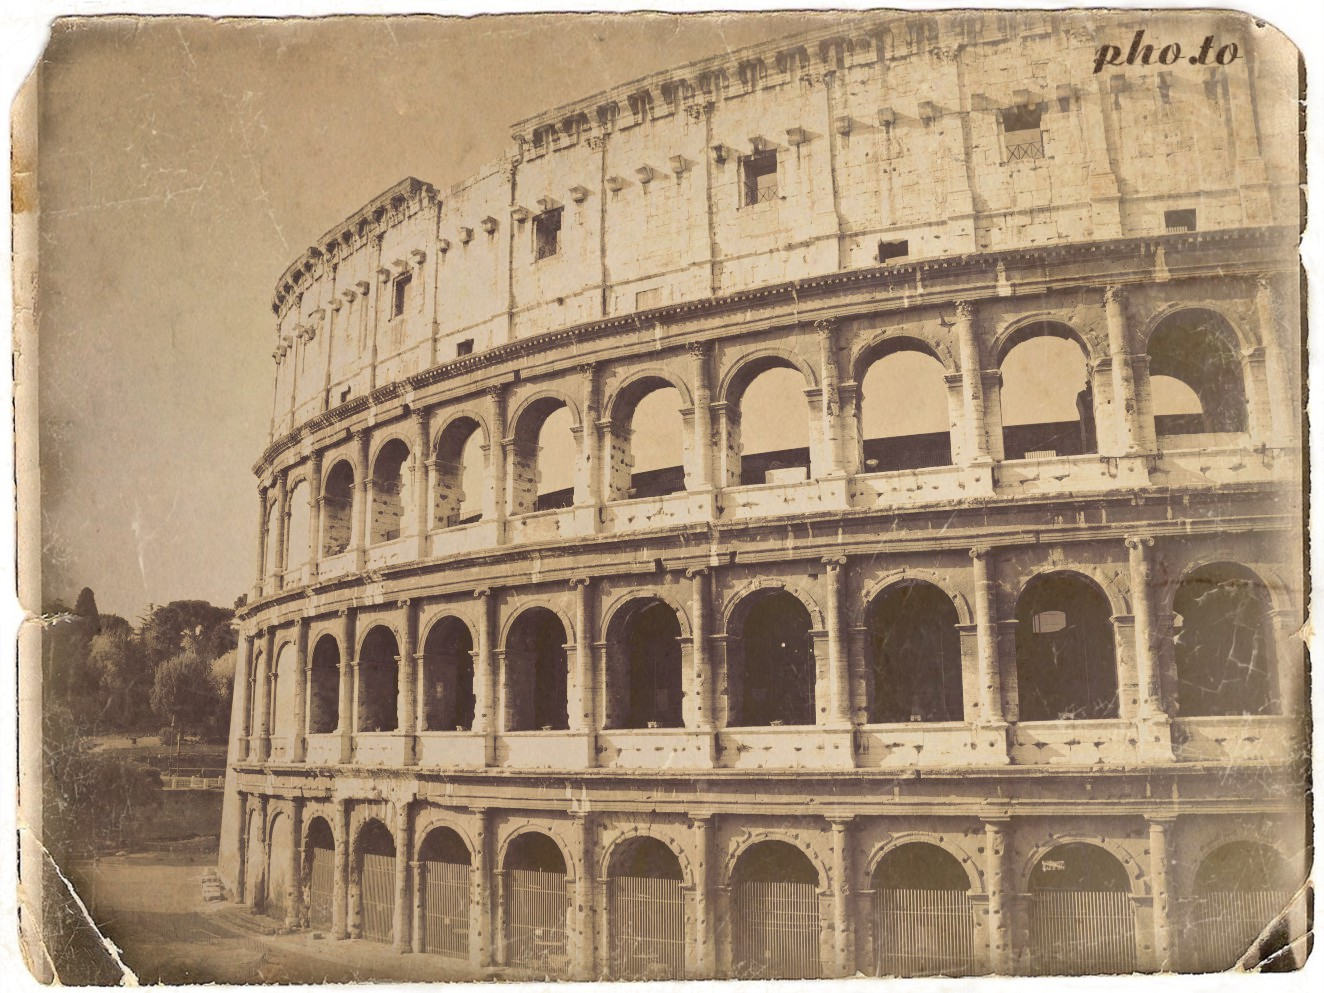 Modern photo of Colosseum is artificially aged online on Funny.Pho.to